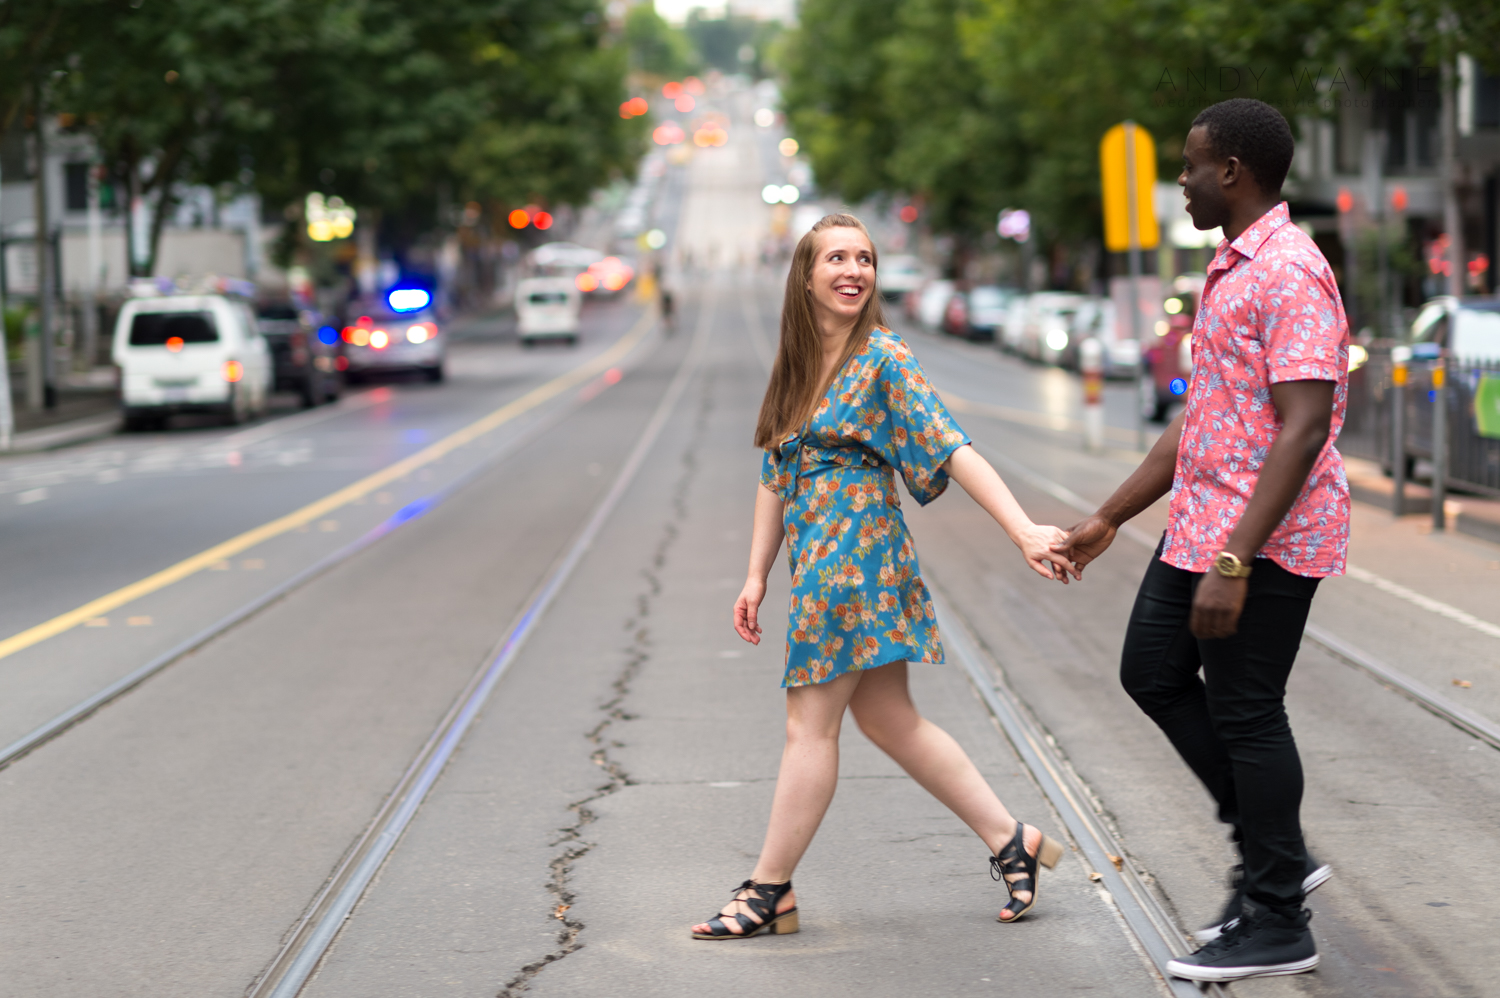 melbourne australia andy wayne photographer engagement shoot-63.jpg